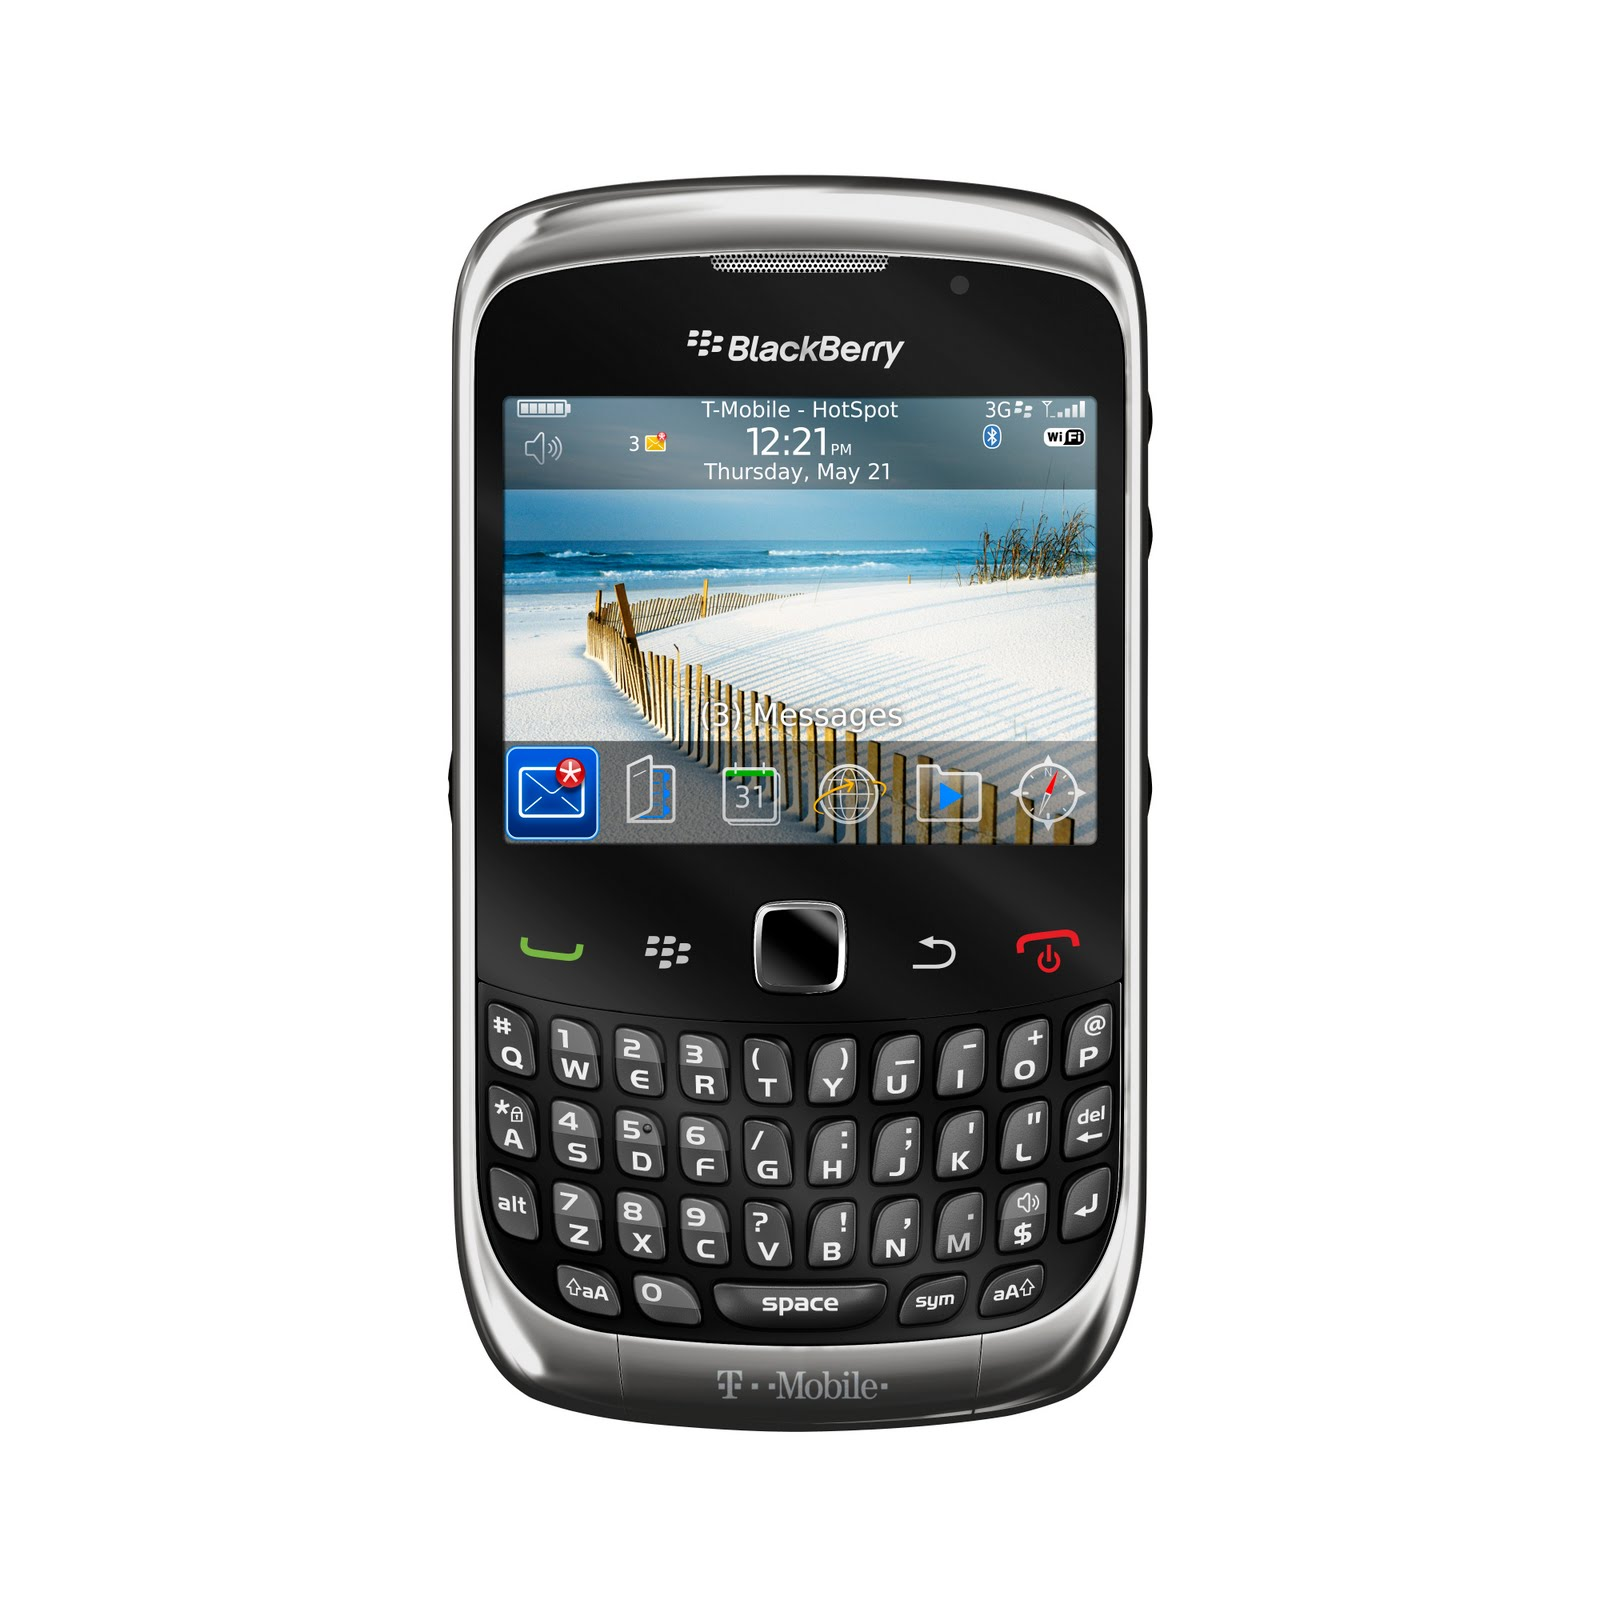 Blackberry Curve 3g 9300 Specs Review Release Date